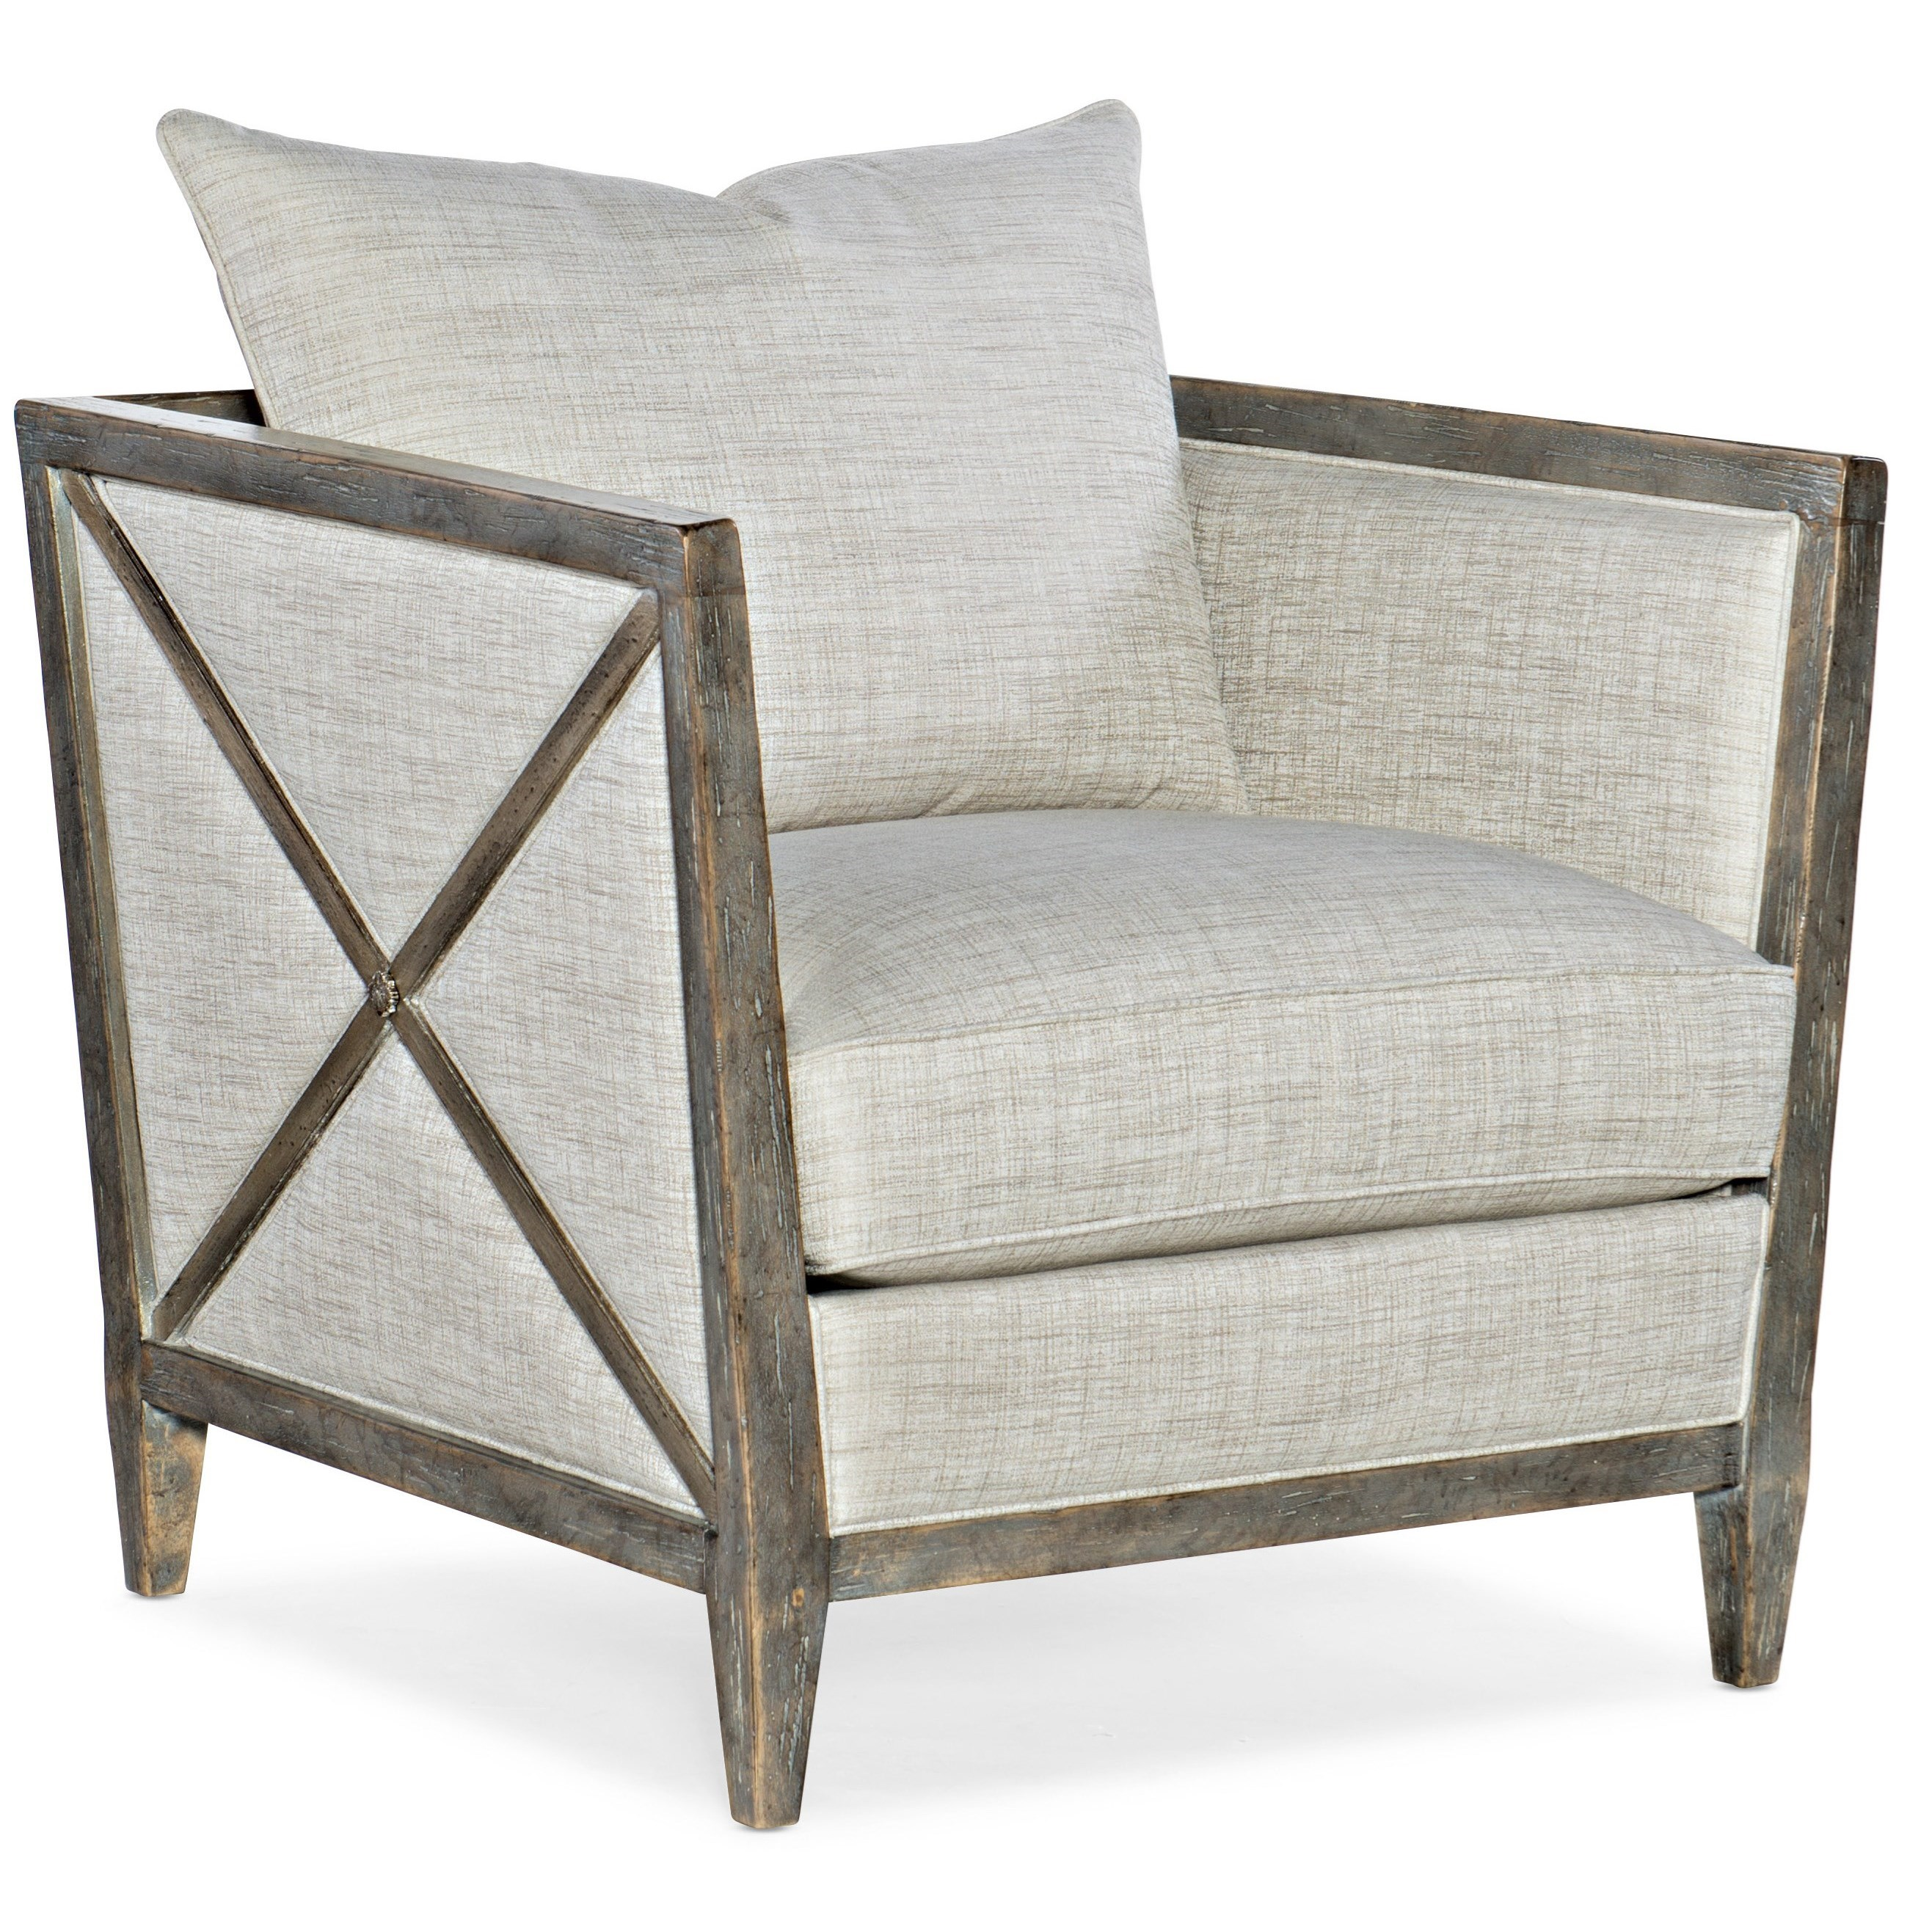 Sanctuary Prim Lounge Chair by Hooker Furniture at Baer's Furniture